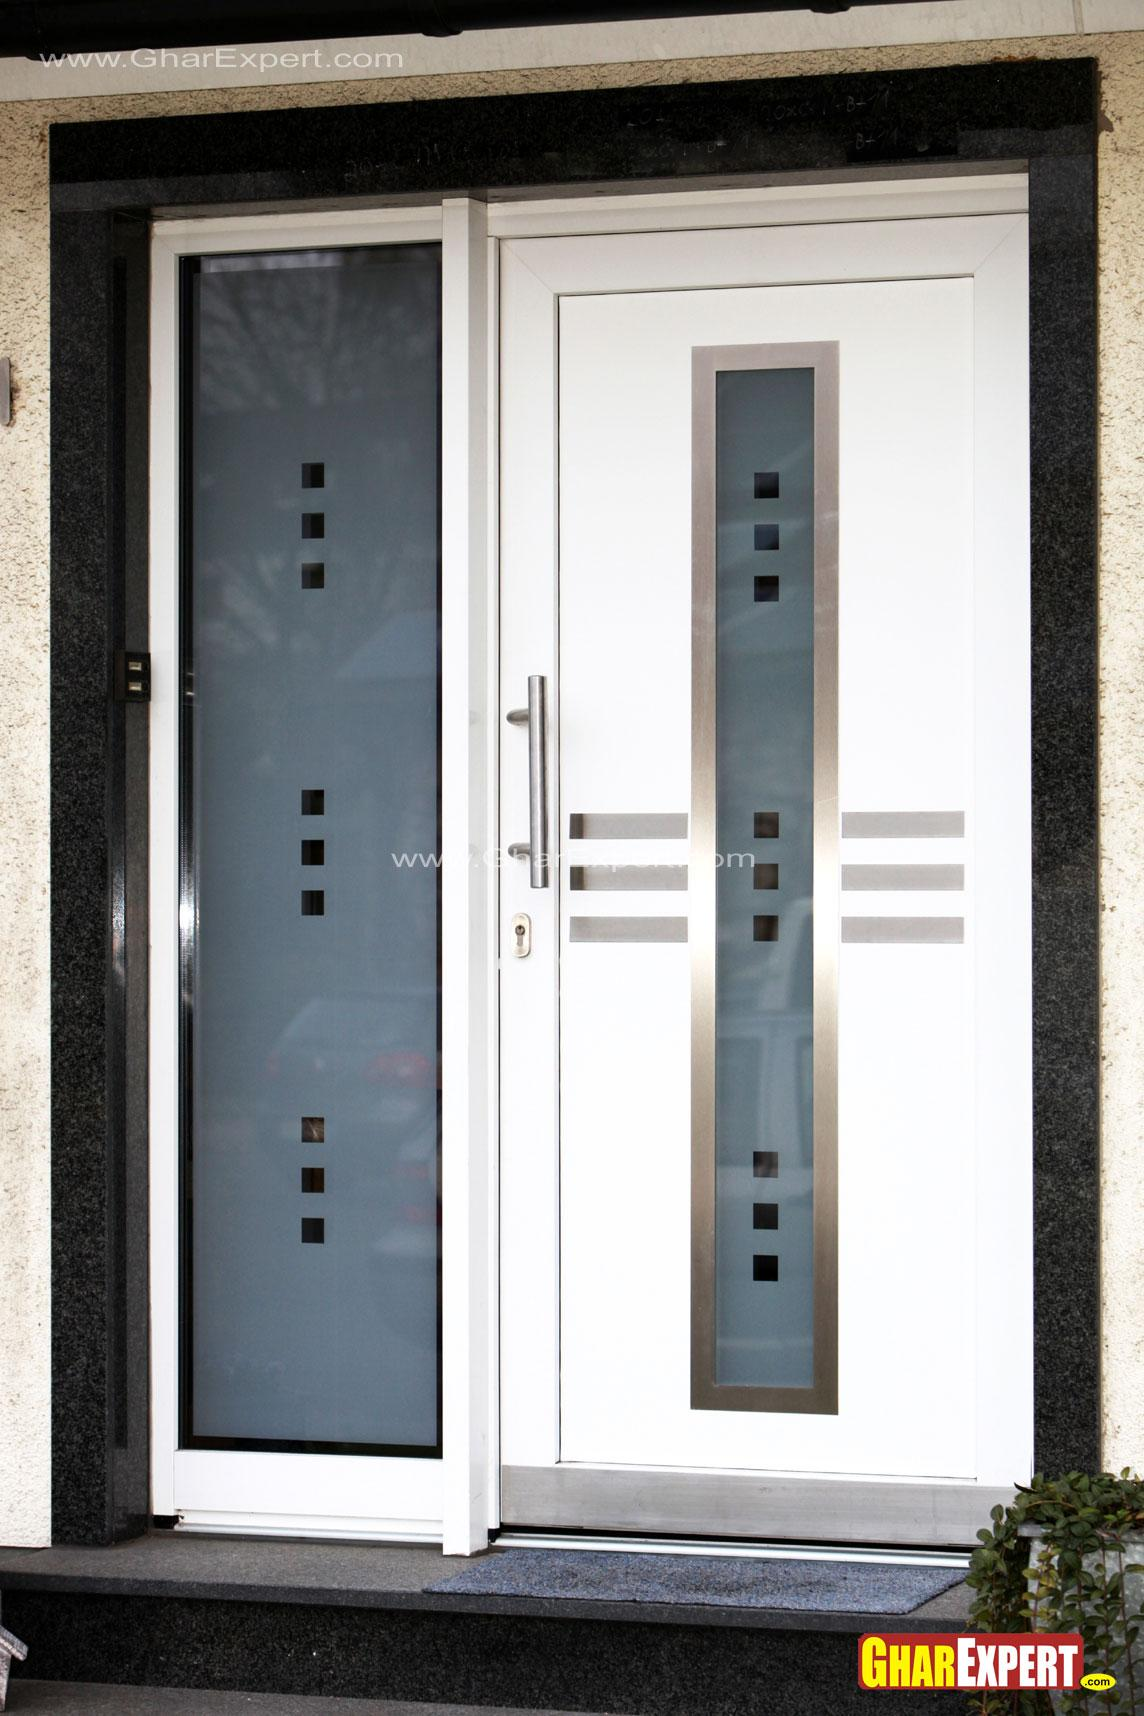 White modern entrance door design gharexpert for Entrance door design